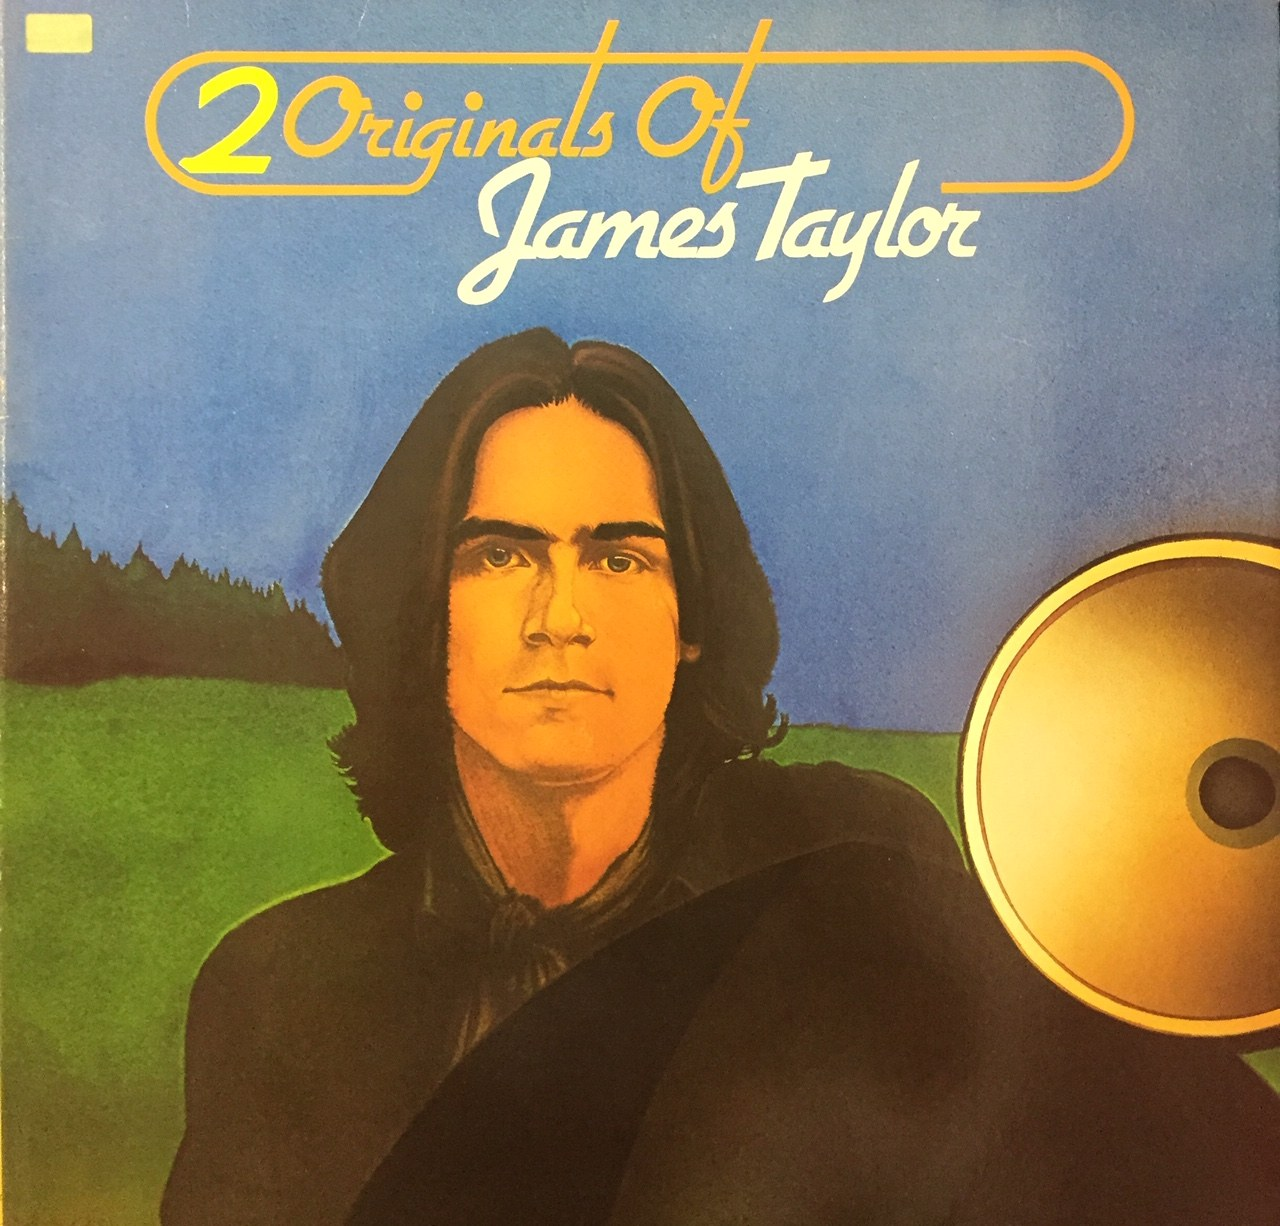 James Taylor 2 Originals Of James Taylor